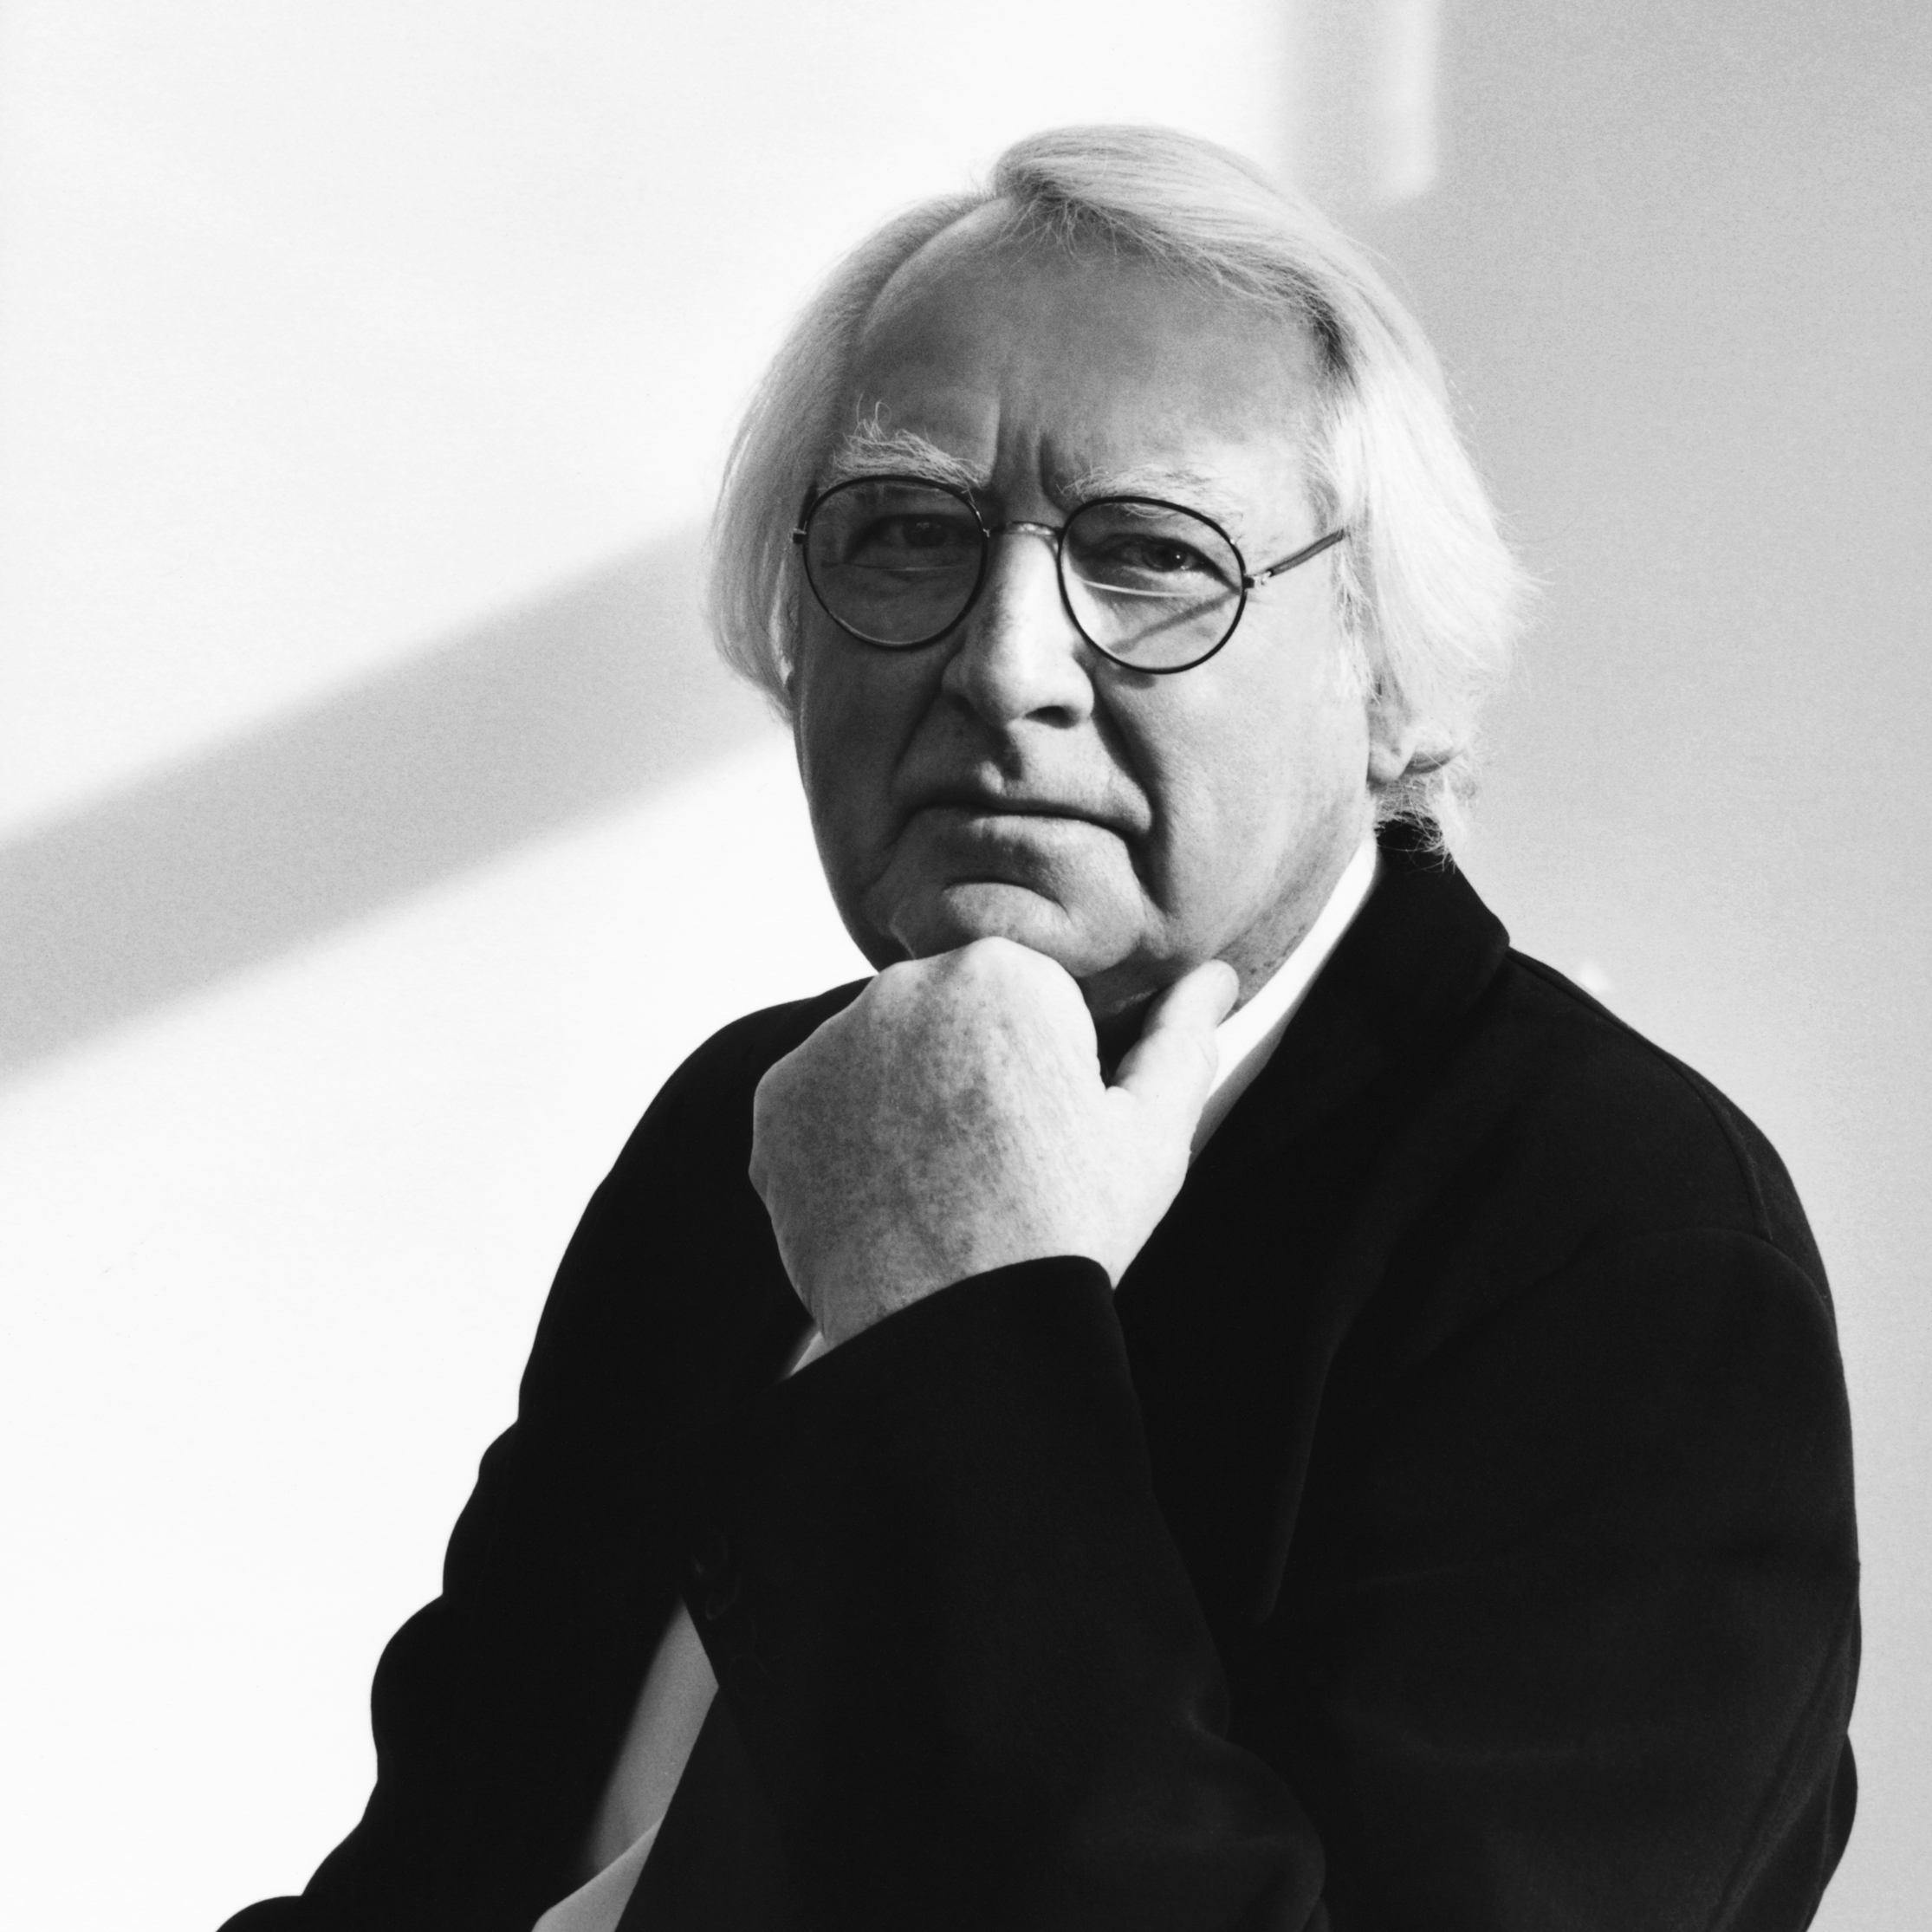 black and white image of a man with white hair and glasses, wearing a black jacket